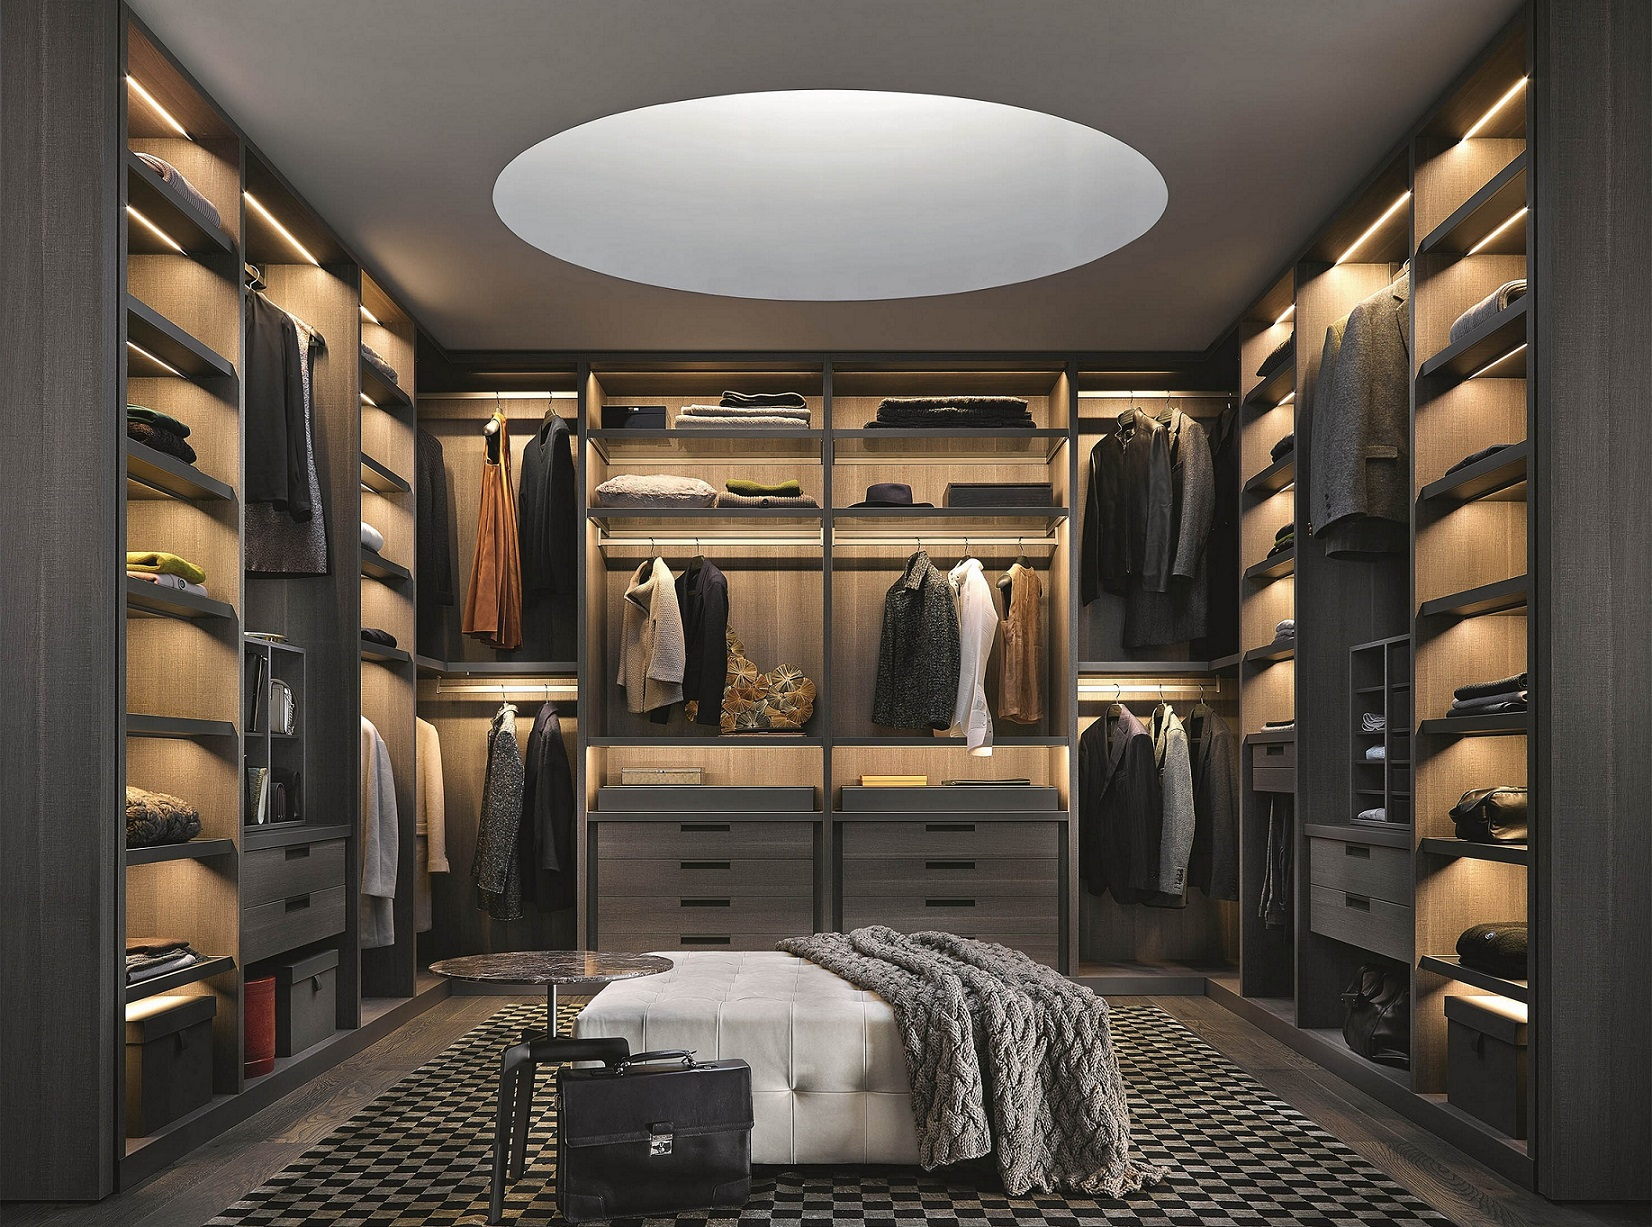 Walk In Closet Design large walk in closet design - 17 tips for best choice | interior